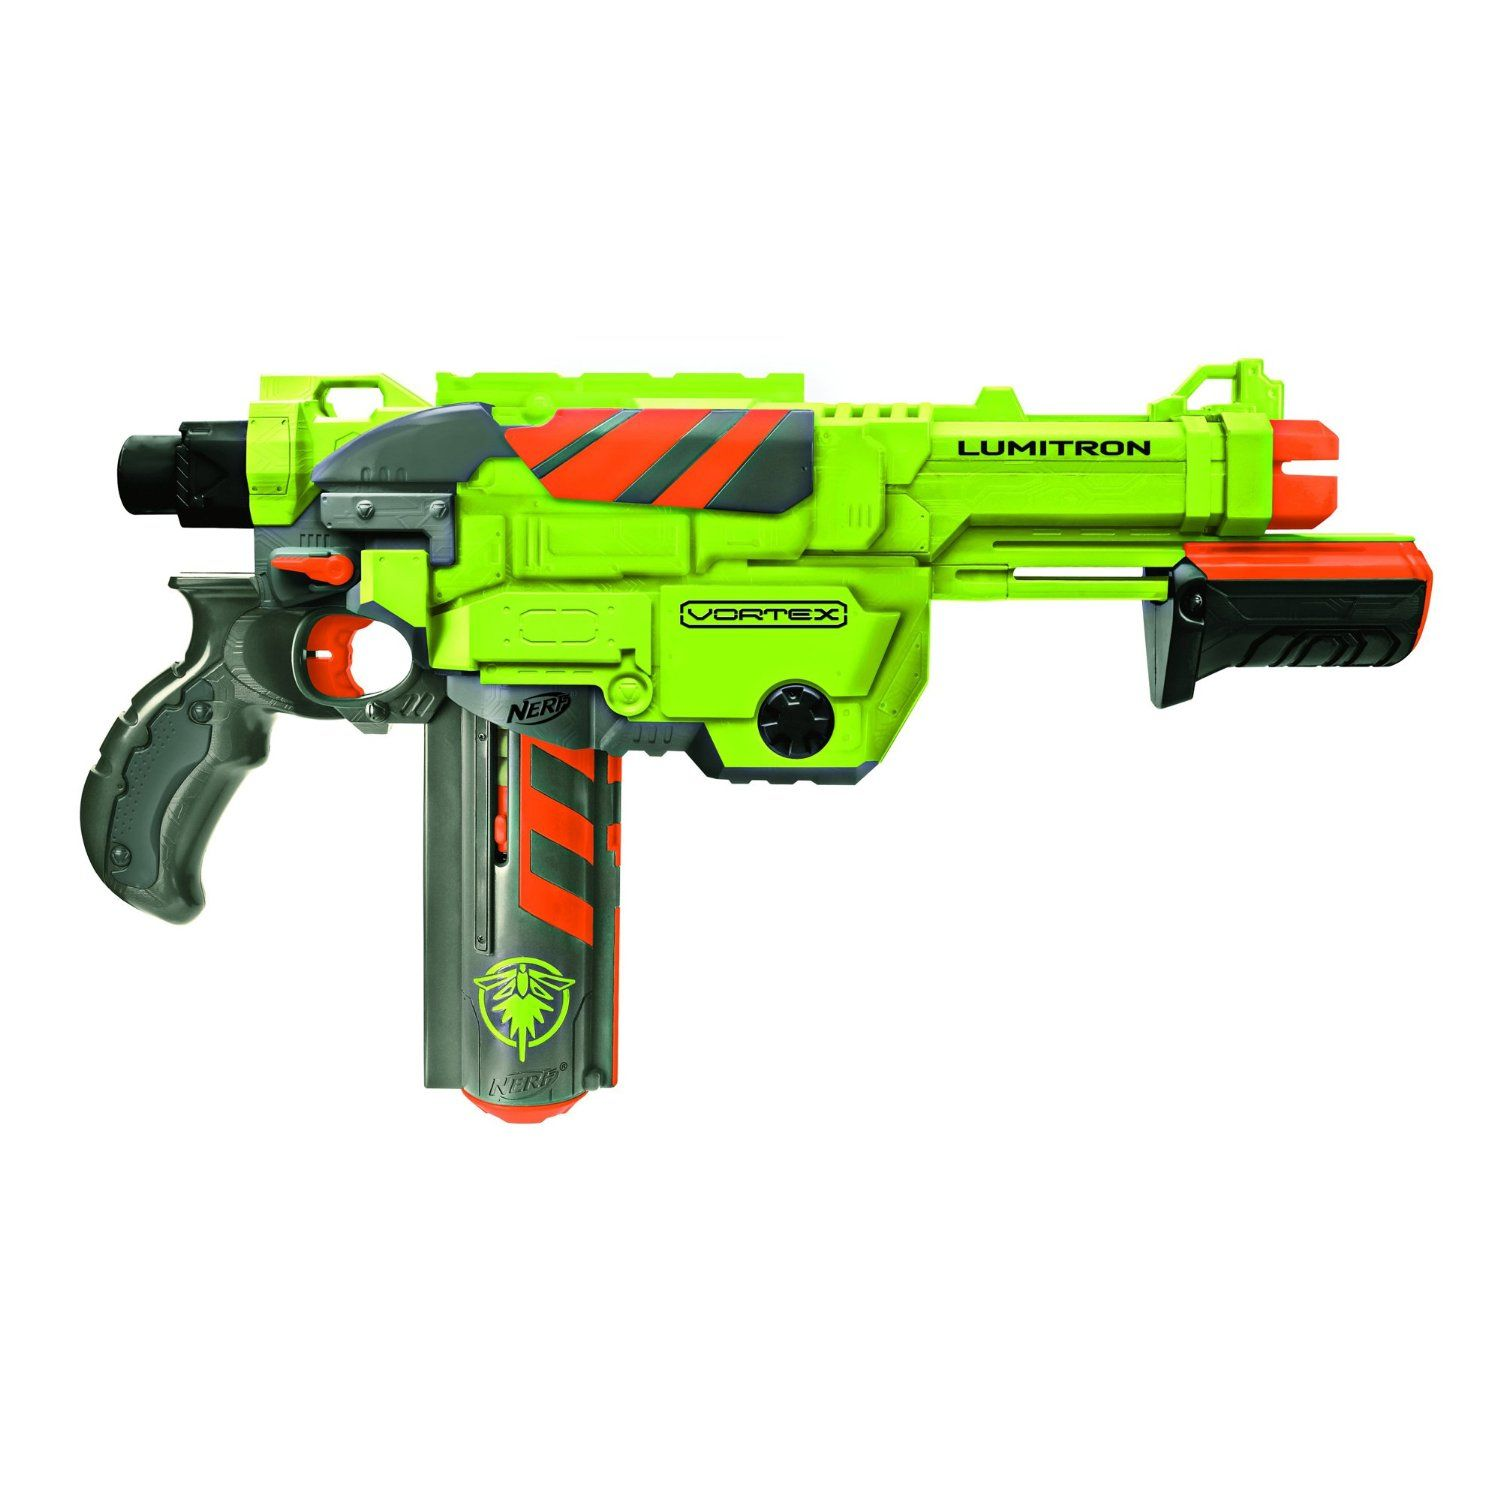 medium Nerf gun - Google Search